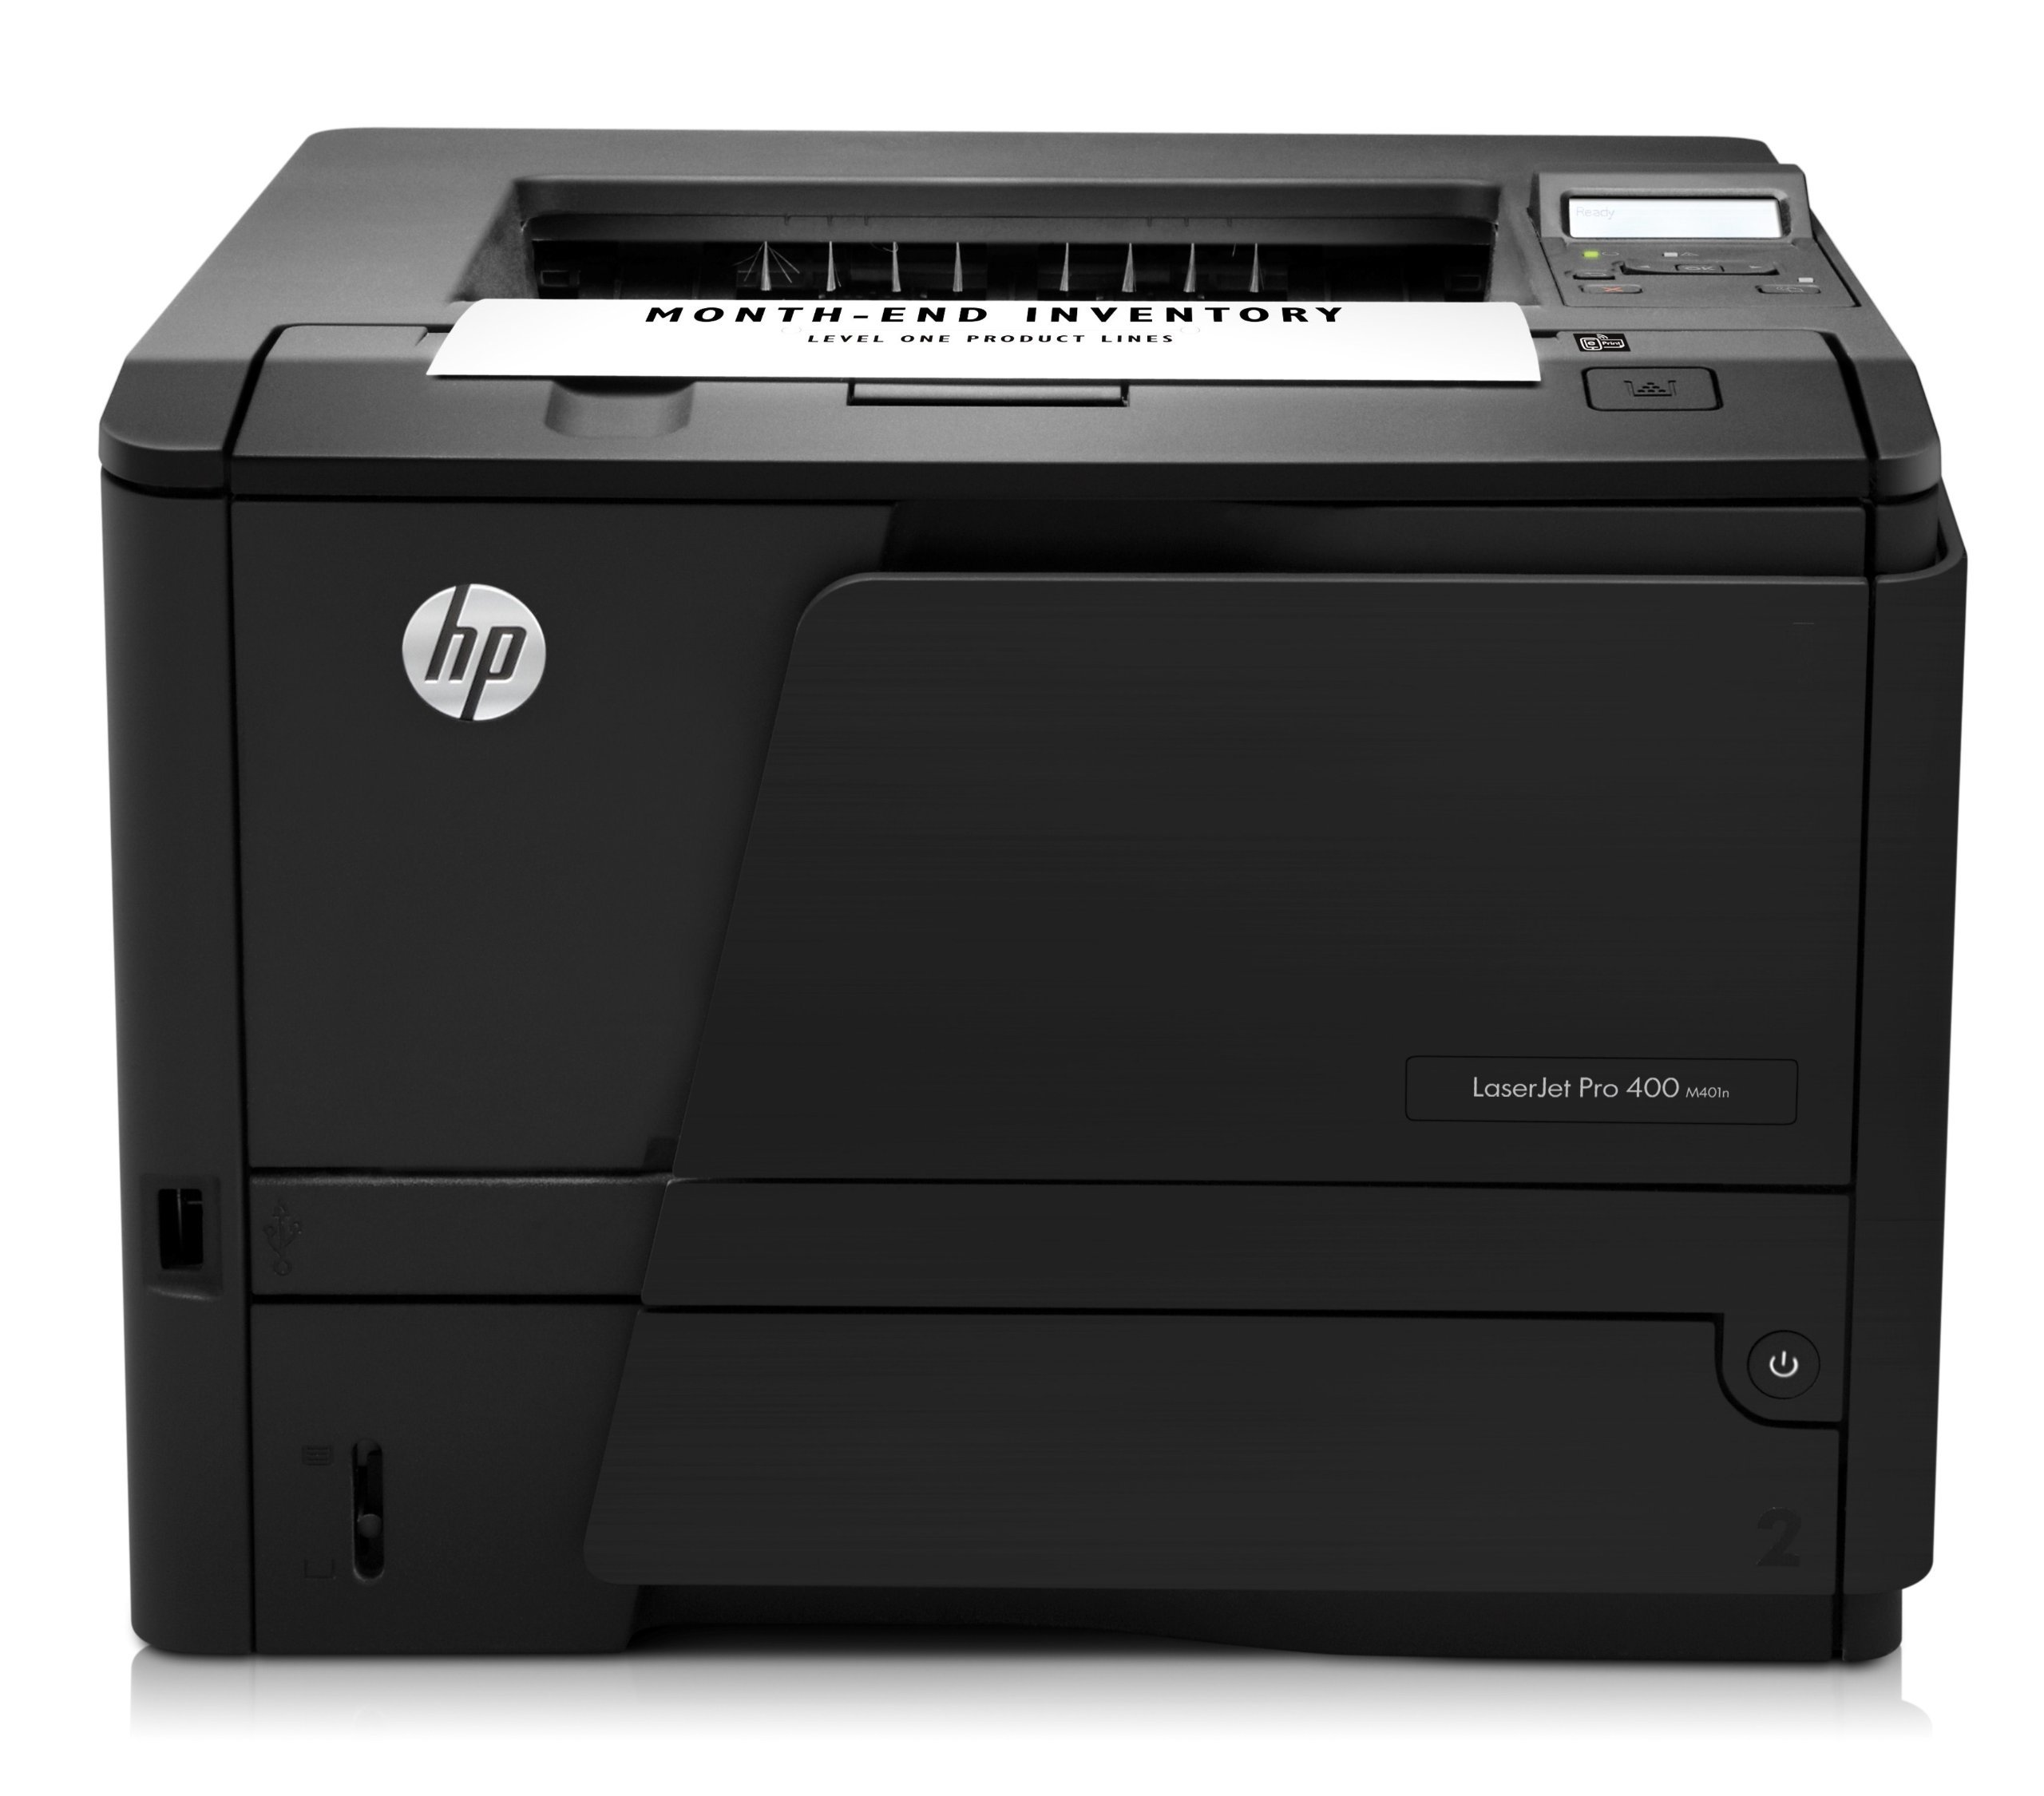 HP LaserJet Pro 400 M401n Monochrome Printer (CZ195A) (Certified Refurbished) by HP